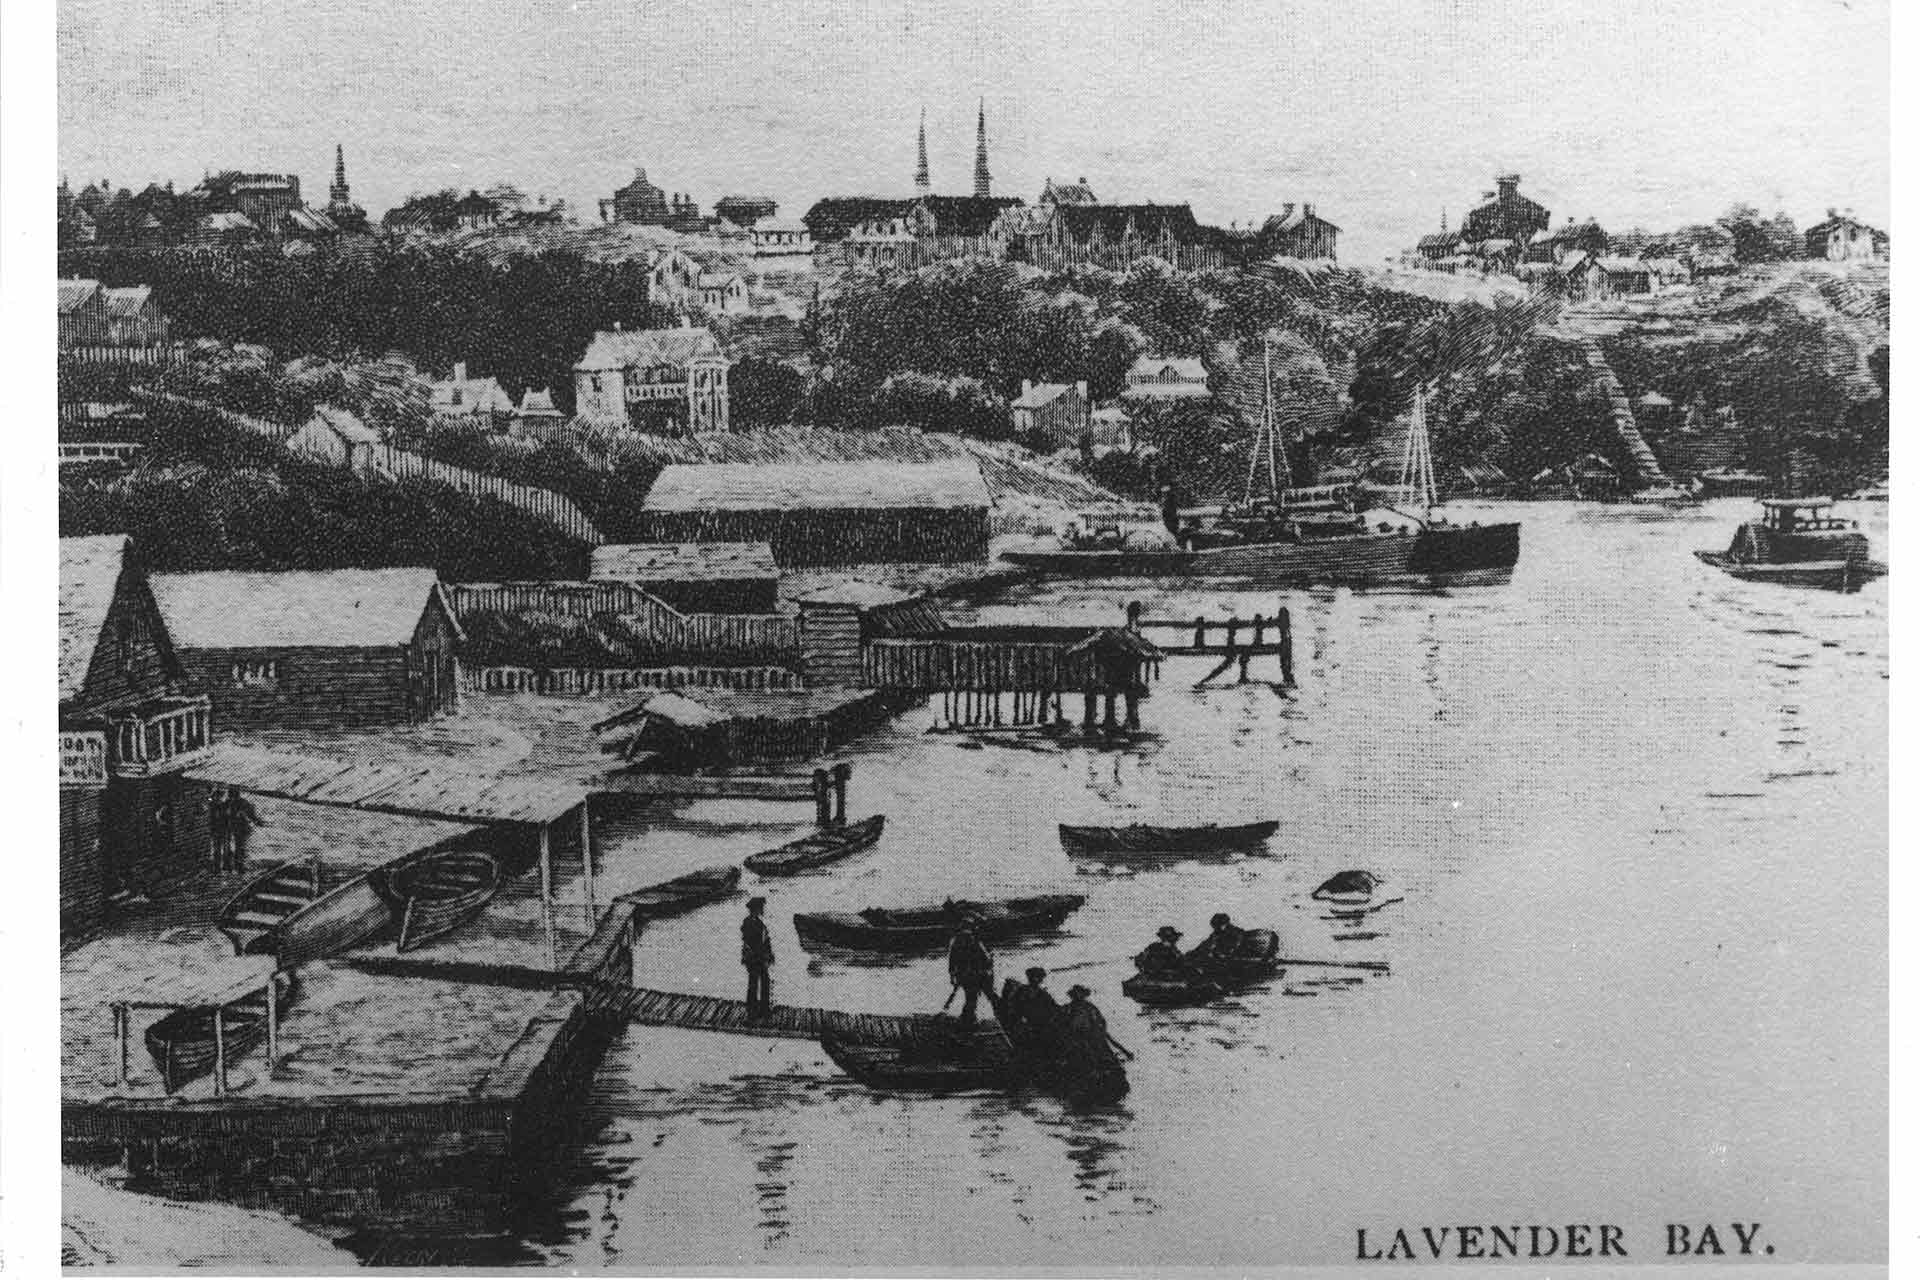 Lavender Bay Etching 1880s